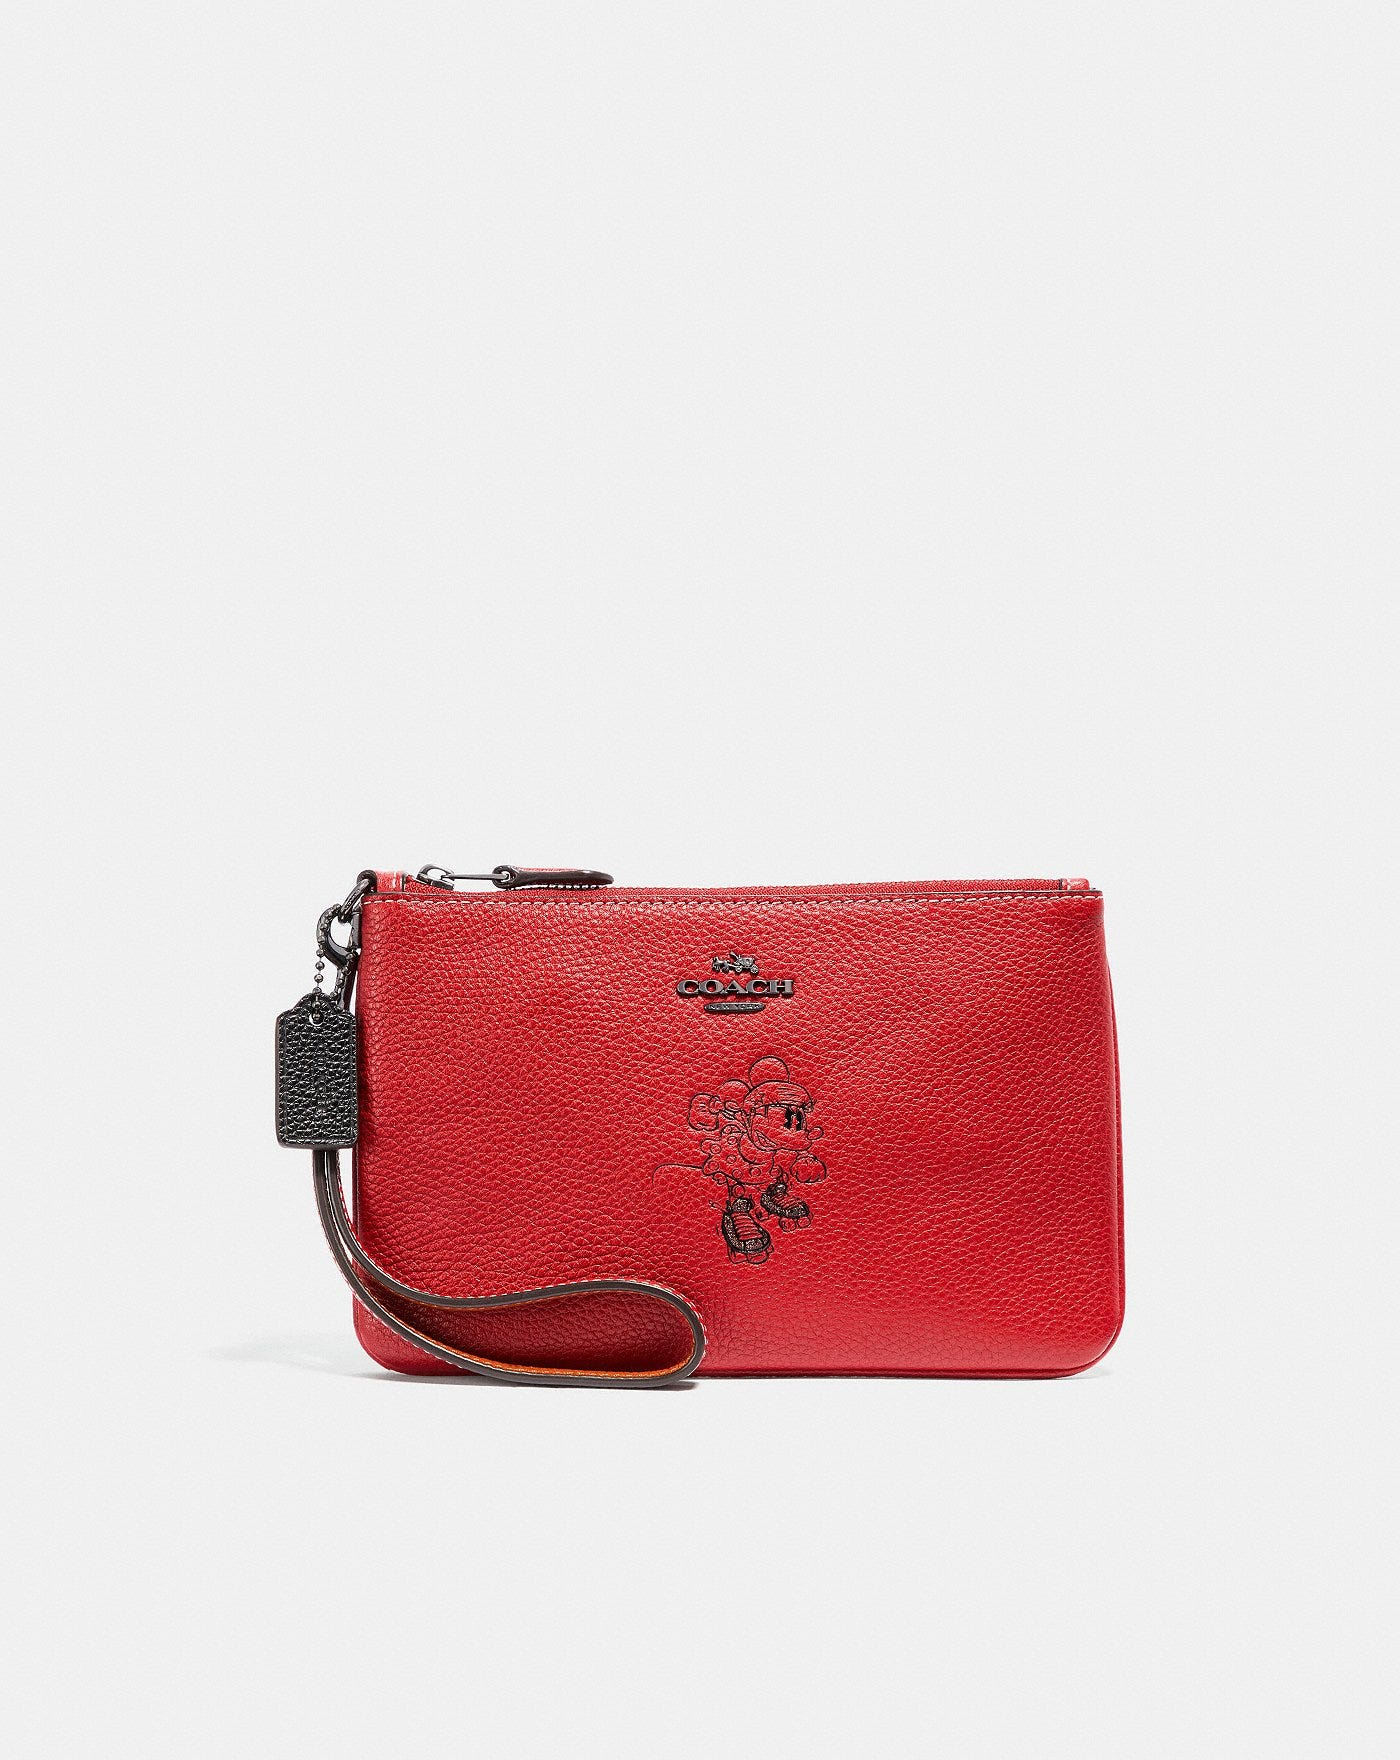 4574d2670c71 Disney x Coach. Boxed Minnie Mouse Small Wristlet With Motif